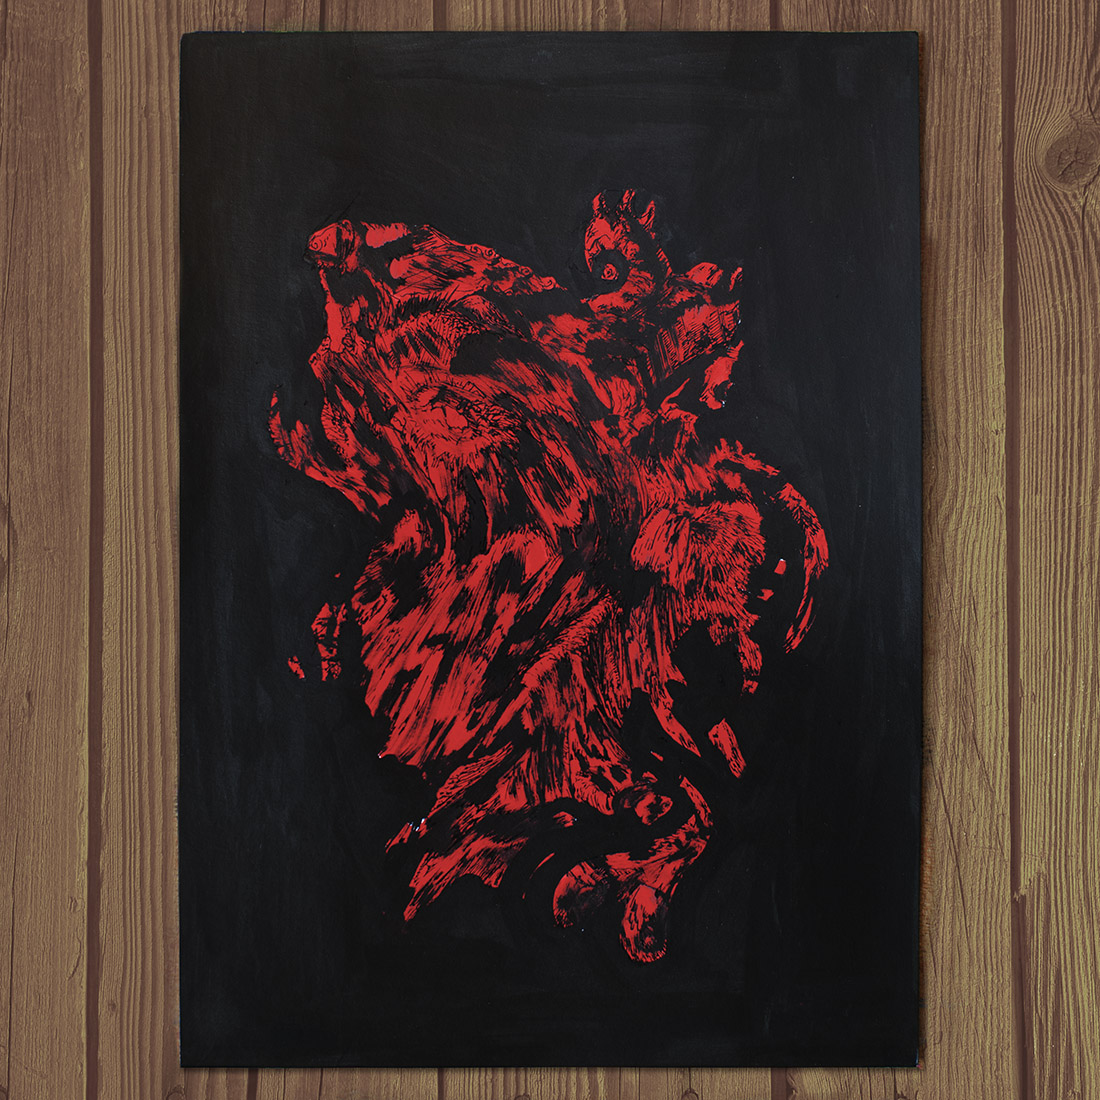 Photo of Kostas Gogas' artwork 'Monstrous Red', a red, high-contrast abstract shape on a black background.